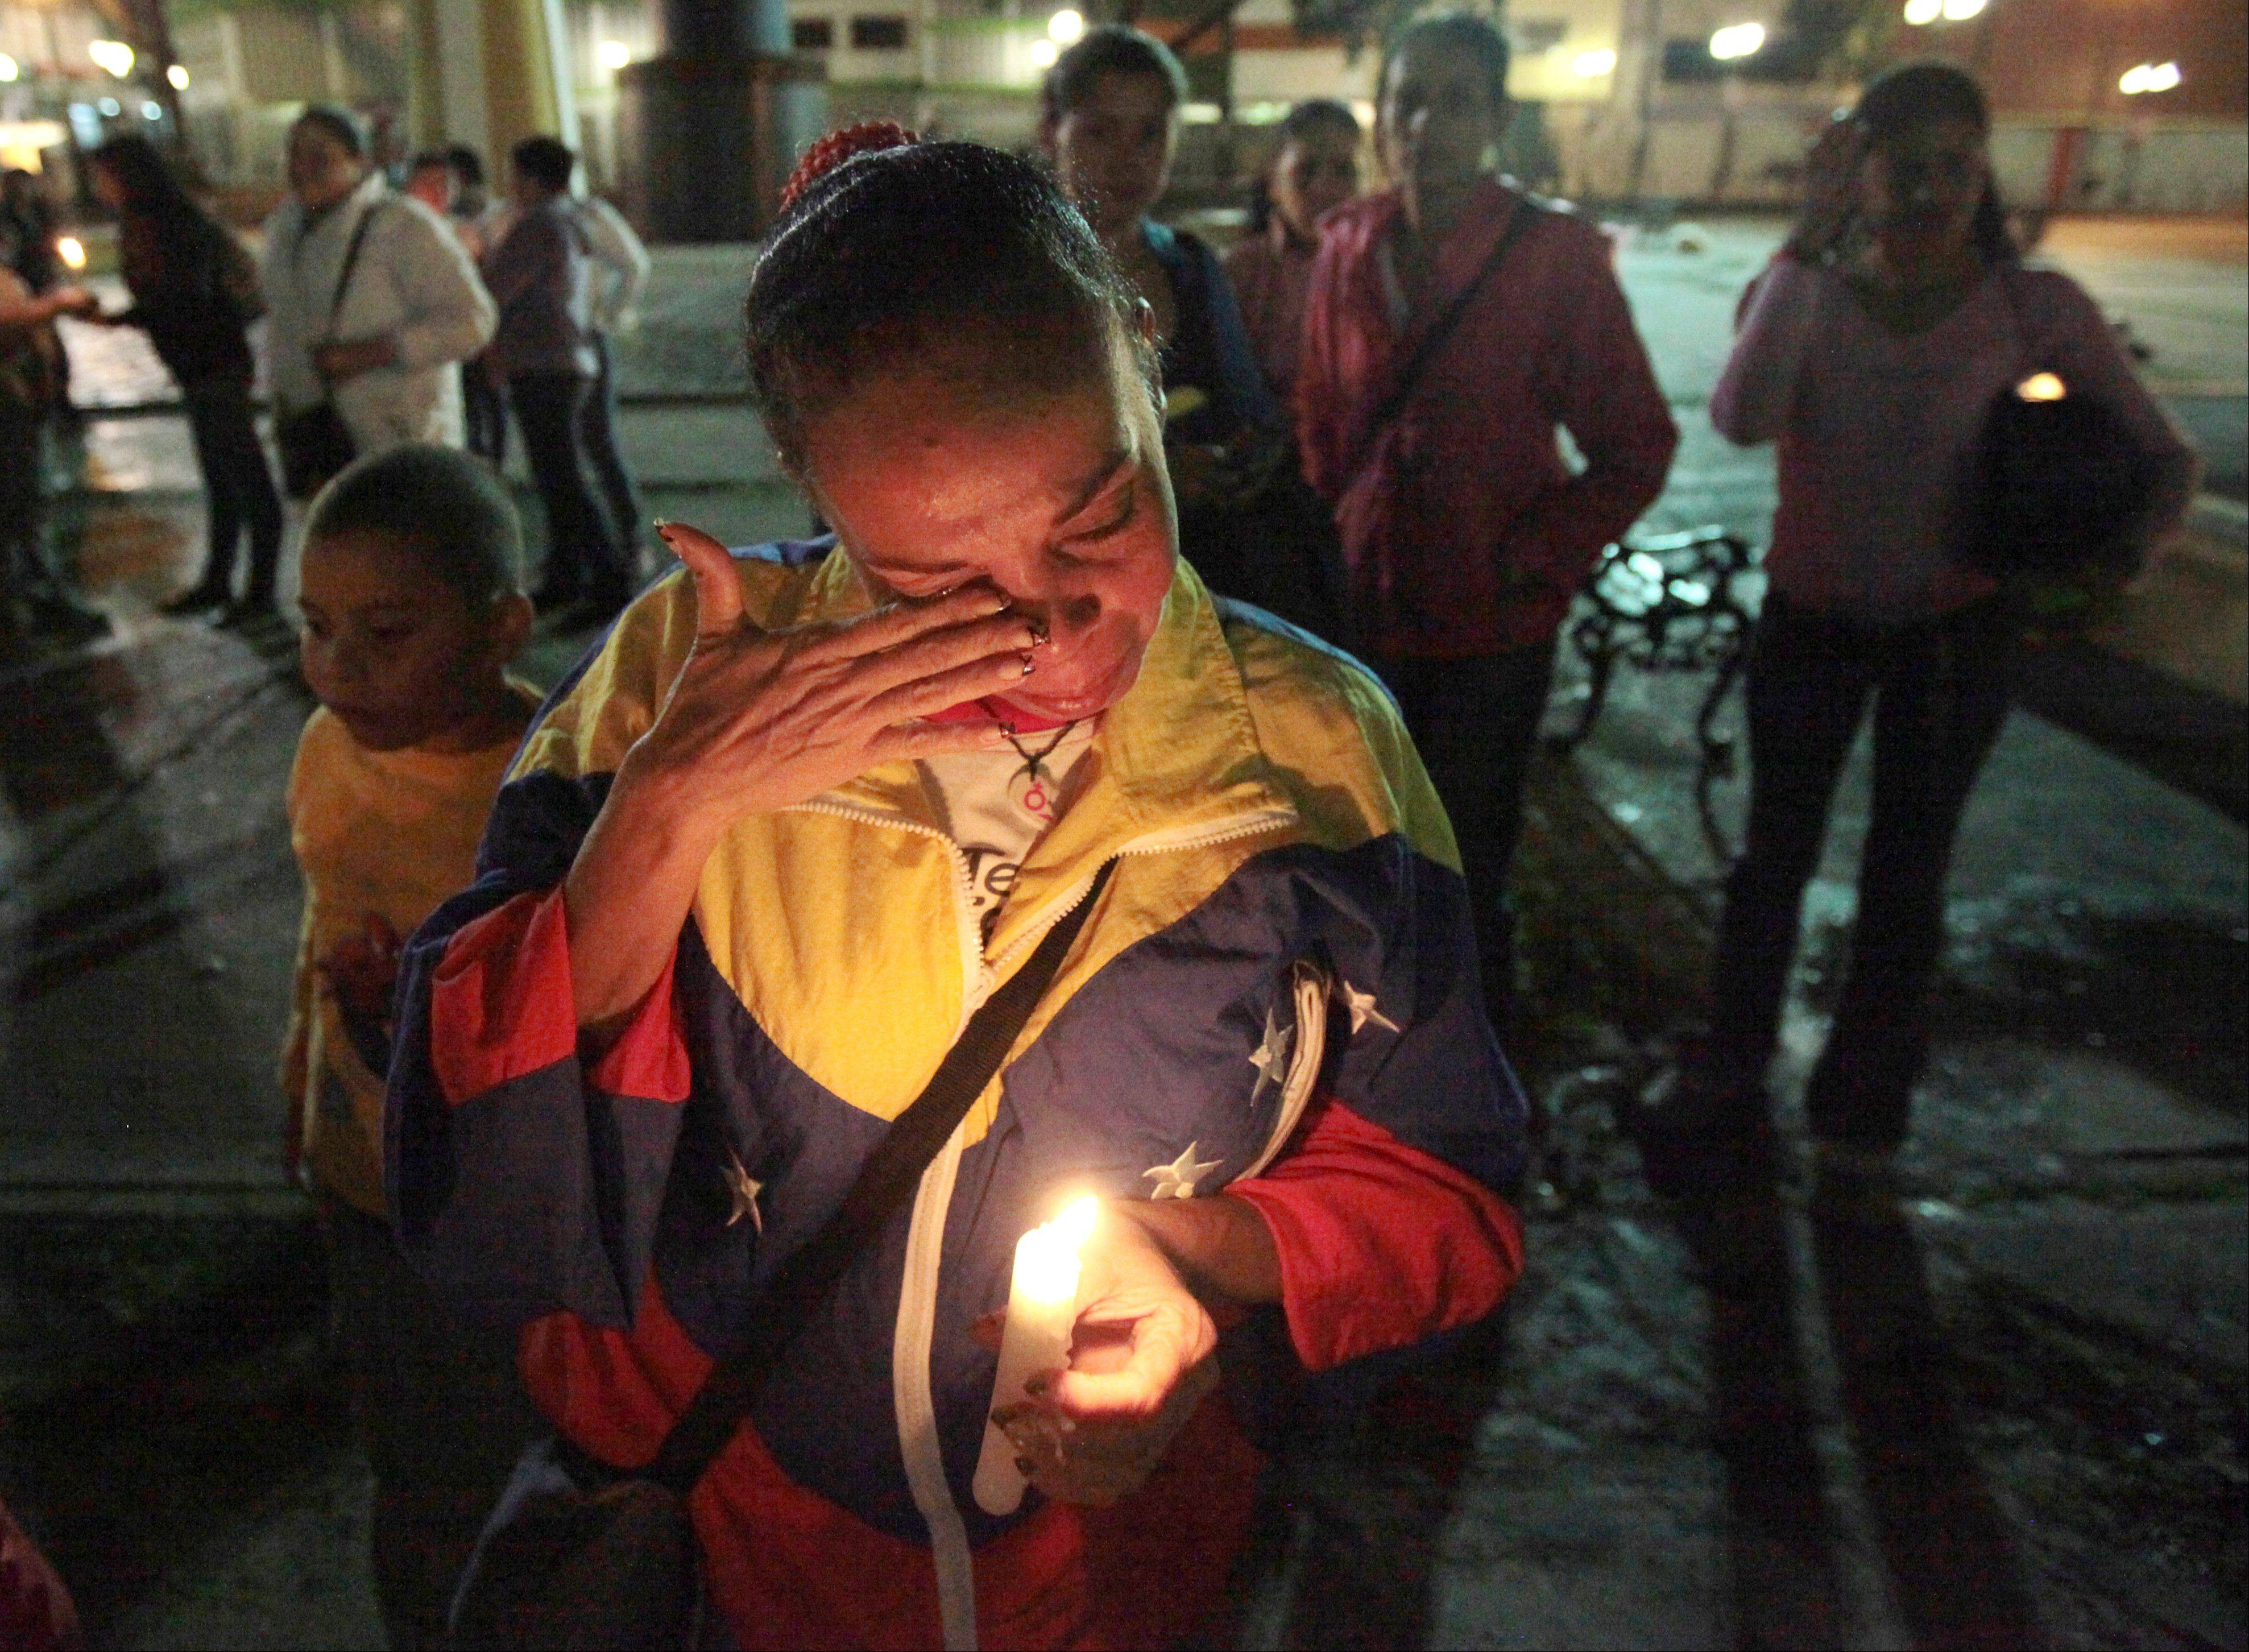 A woman holds a candle as she reacts during a vigil in support of Venezuela�s President Hugo Chavez in Caracas, Venezuela, Thursday, Dec. 13, 2012. Chavez is recovering favorably despite suffering complications during cancer surgery in Cuba, his Vice President Nicolas Maduro said Thursday amid uncertainty over the Venezuelan leader�s health crisis and the country�s political future.